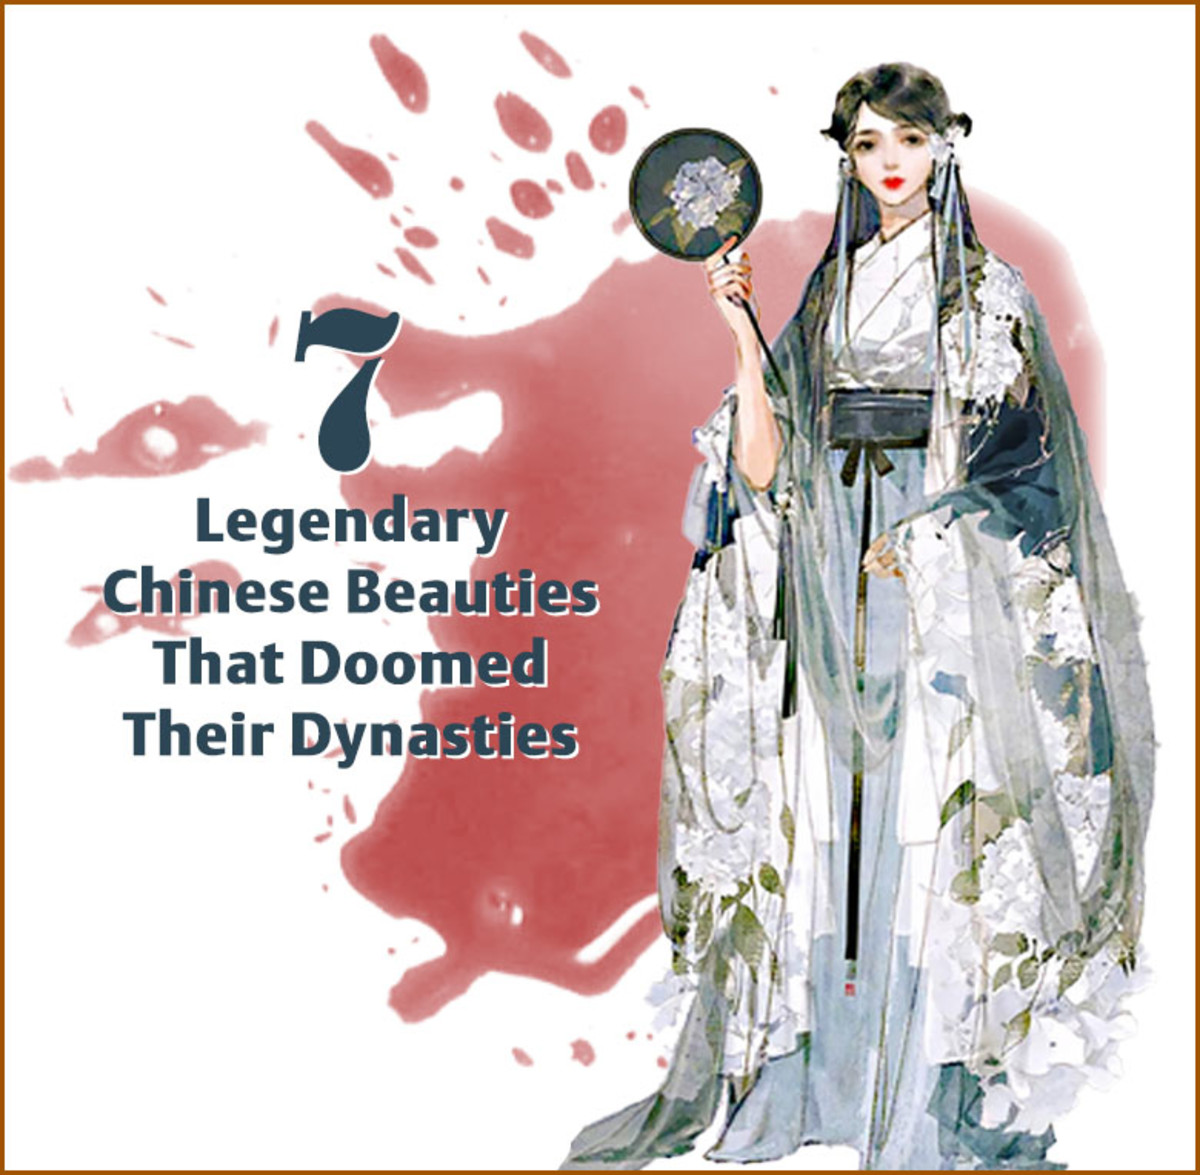 Several dynasties in Imperial Chinese history were destroyed because a ruler was infatuated with a legendary beauty.